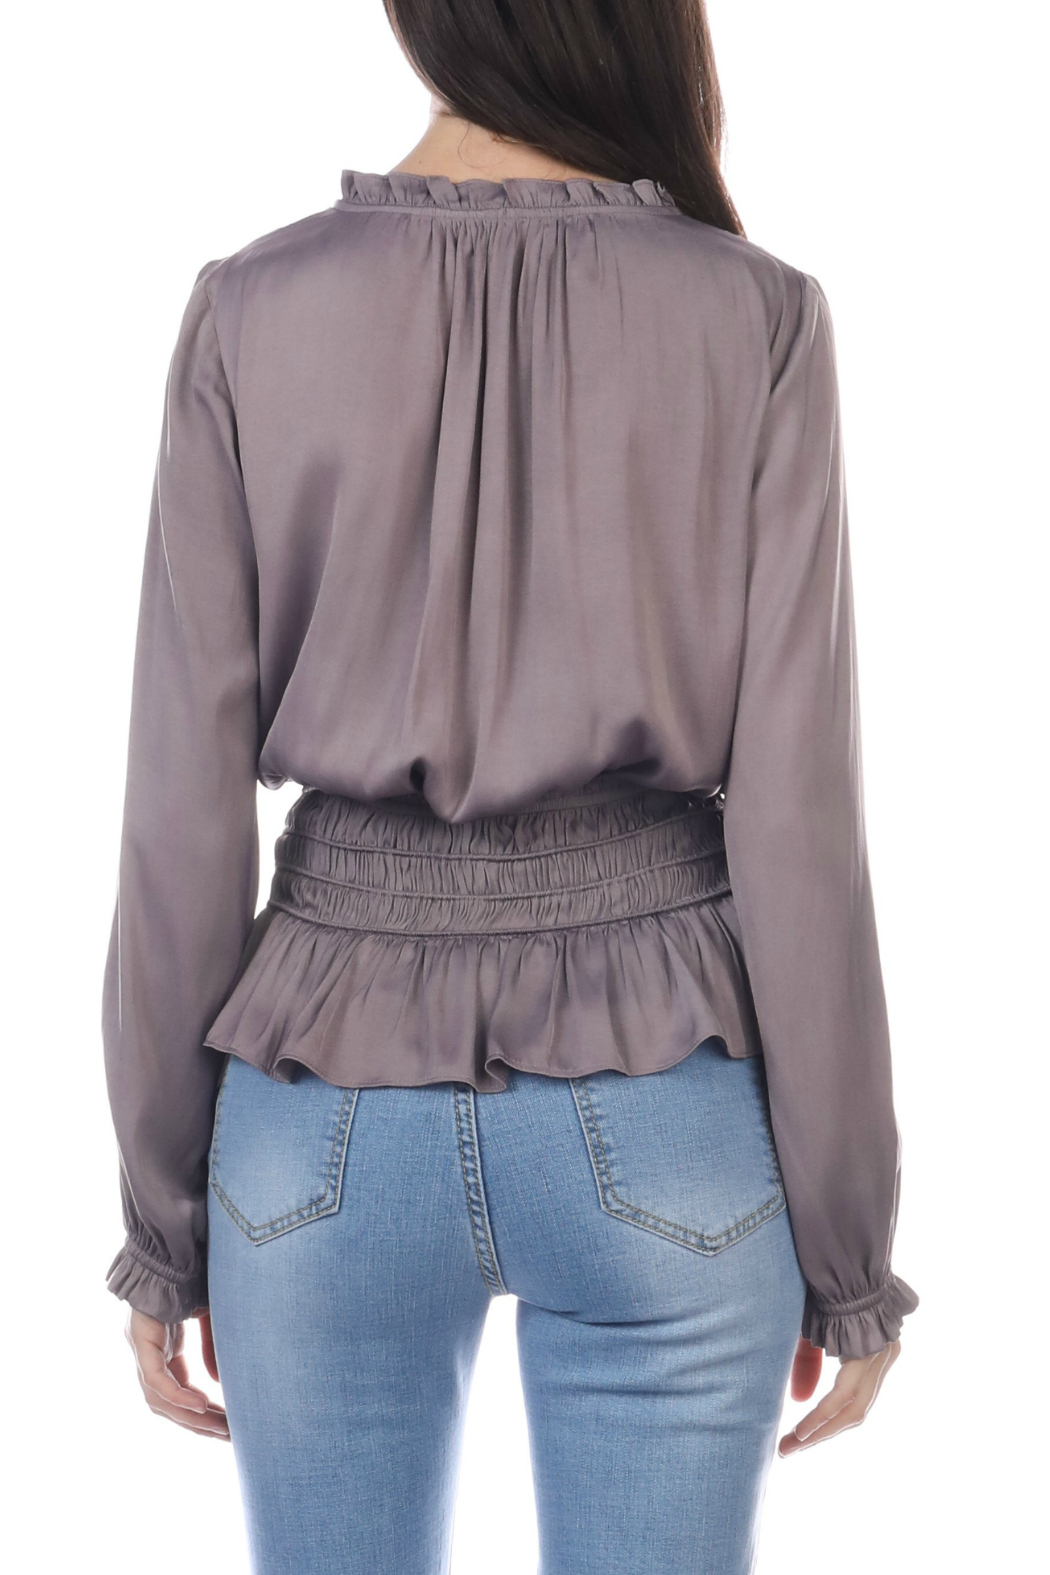 Current Air Smocked Waist Tie Front Blouse - Front Full Image